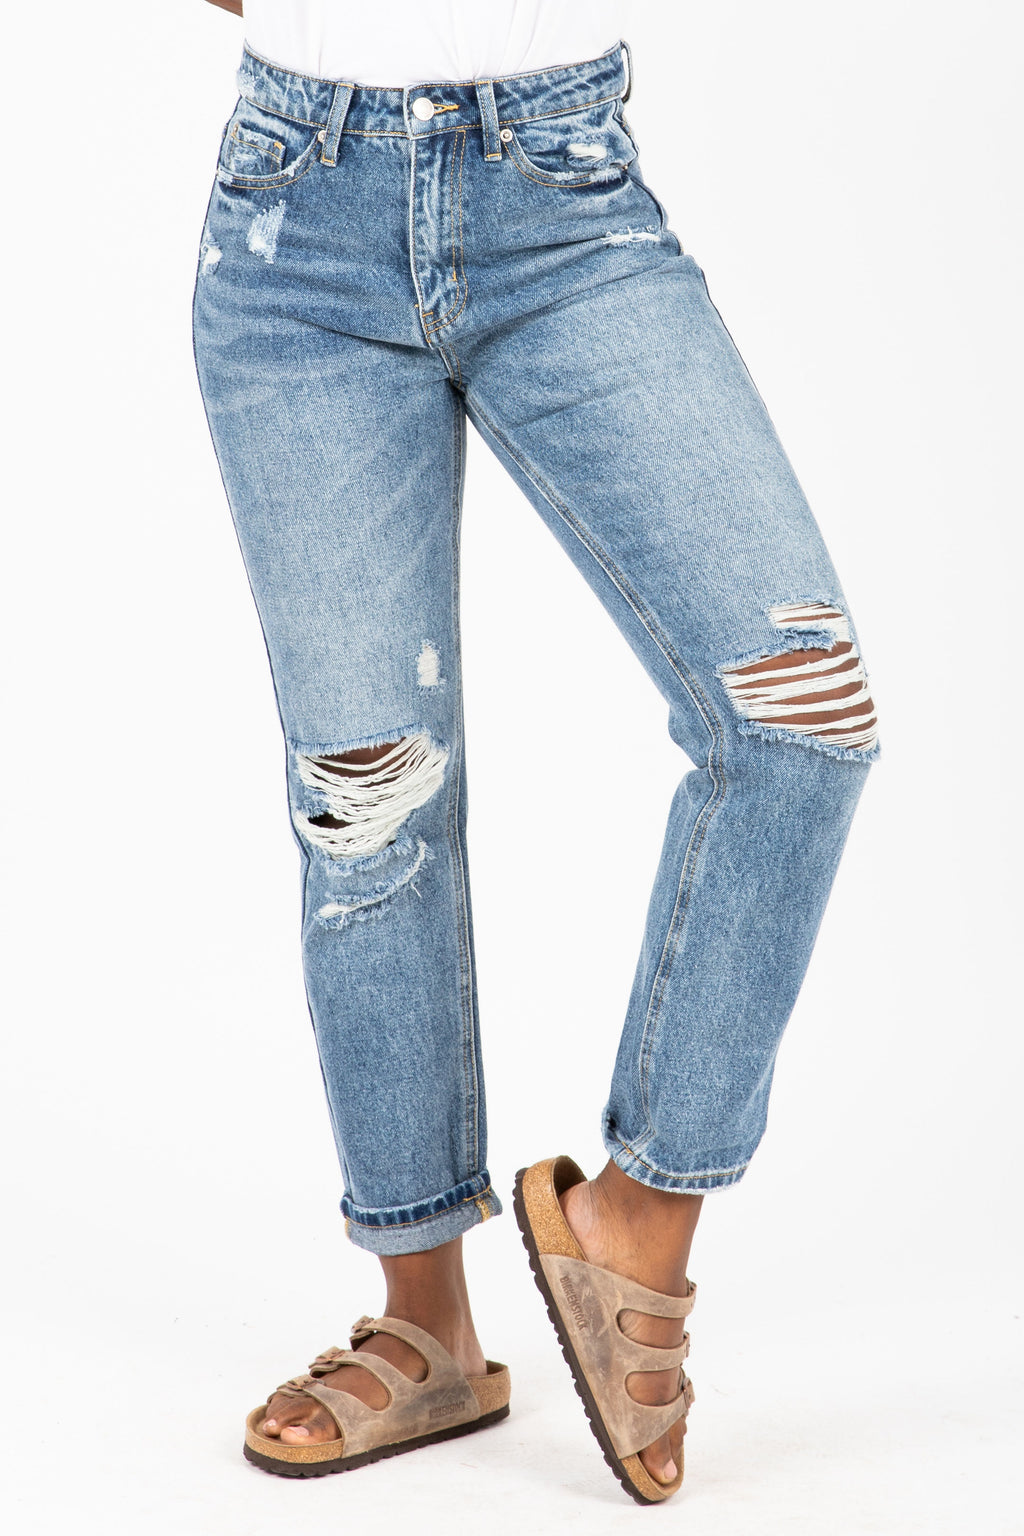 The Ross High Rise Destructed Jeans in Medium Wash